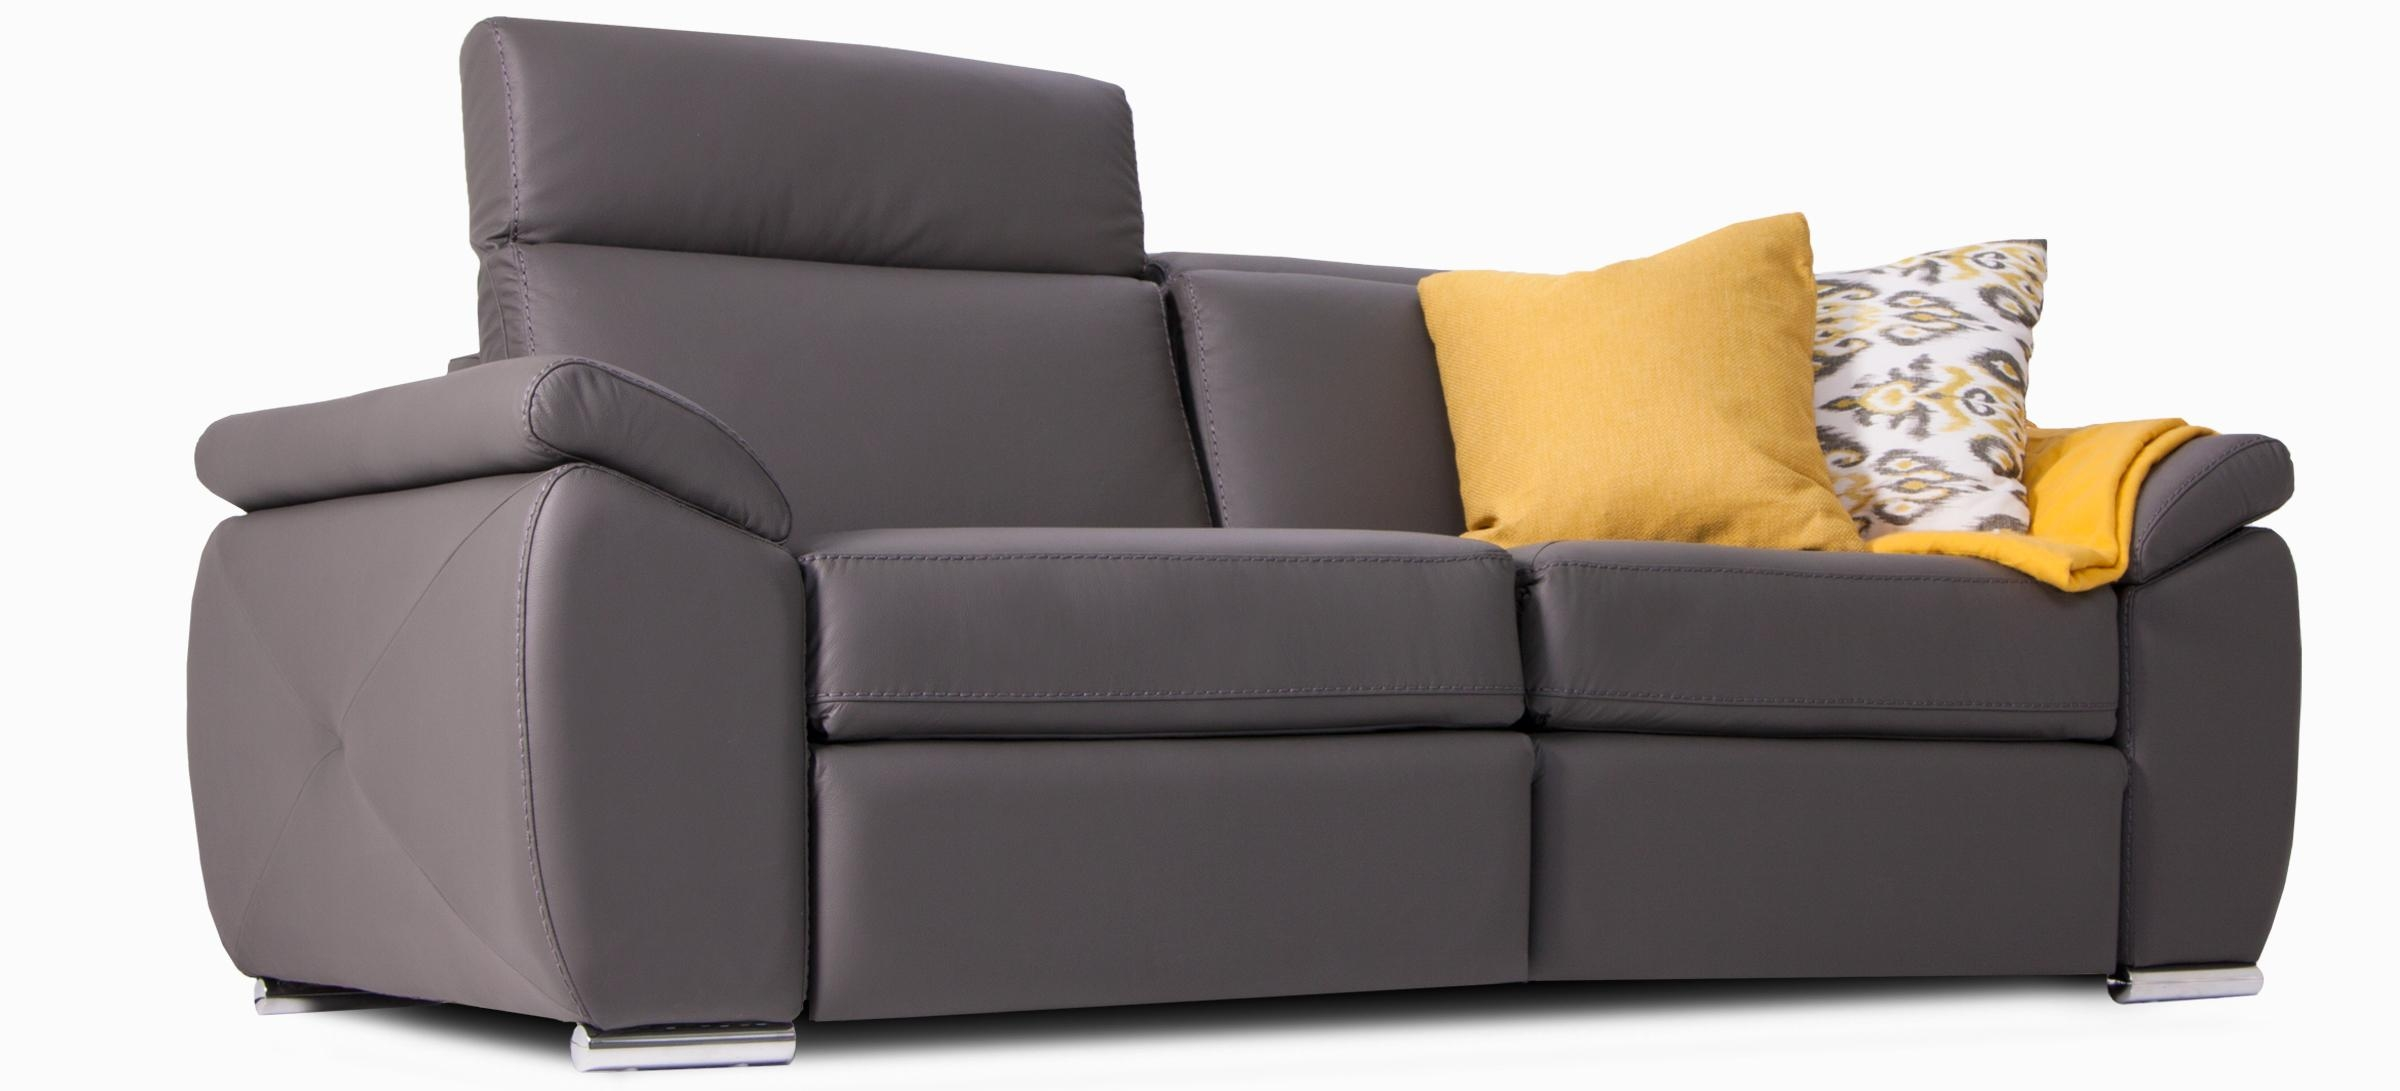 Sofas & Loveseats – Upholstered Living Room Furniture Regarding Florence Sofas And Loveseats (View 18 of 20)